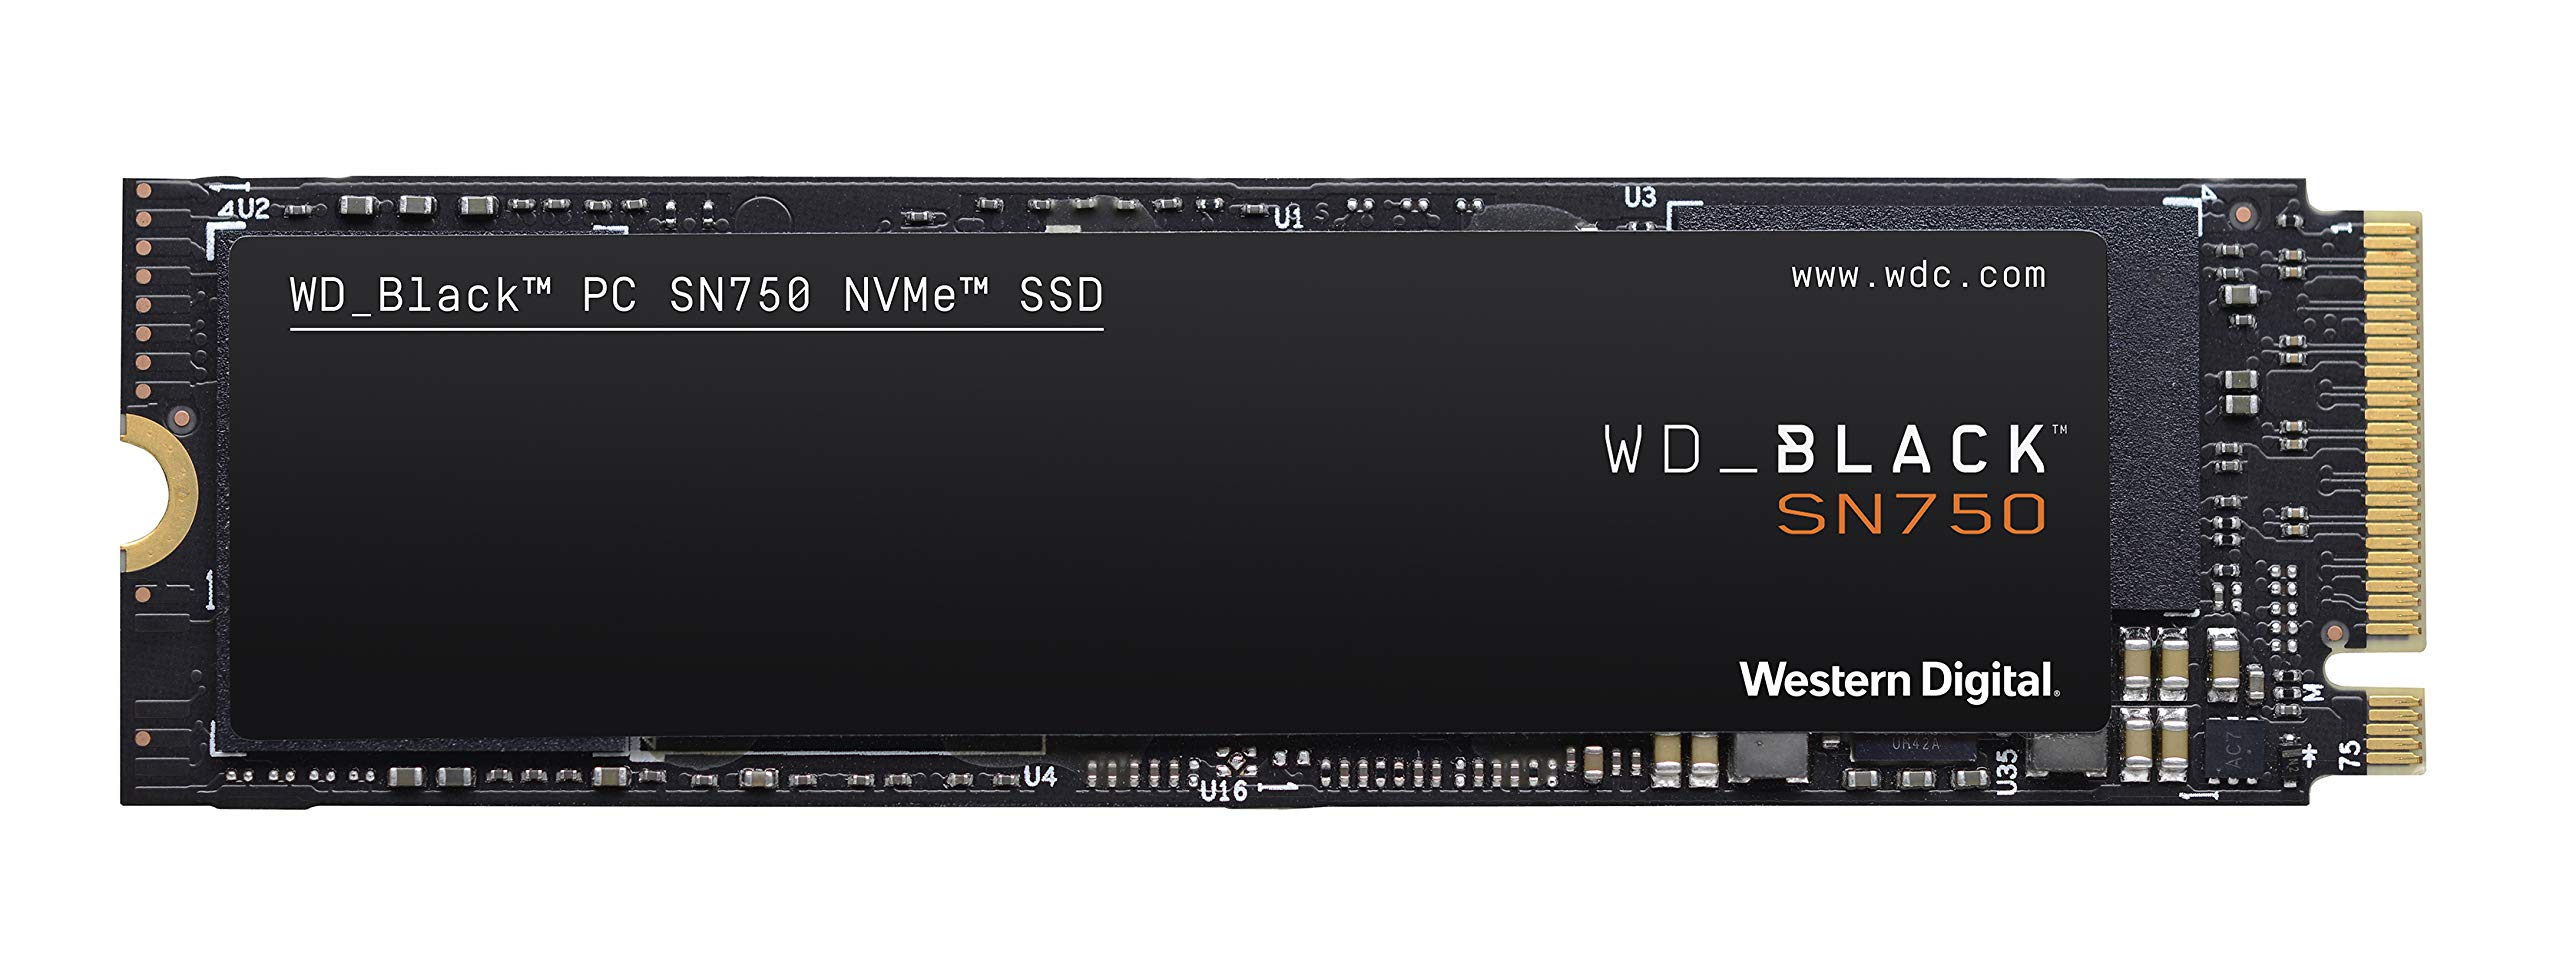 WD BLACK SN750 500GB NVMe Internal Gaming SSD - Gen3 PCIe, M.2 2280, 3D NAND - WDS500G3X0C